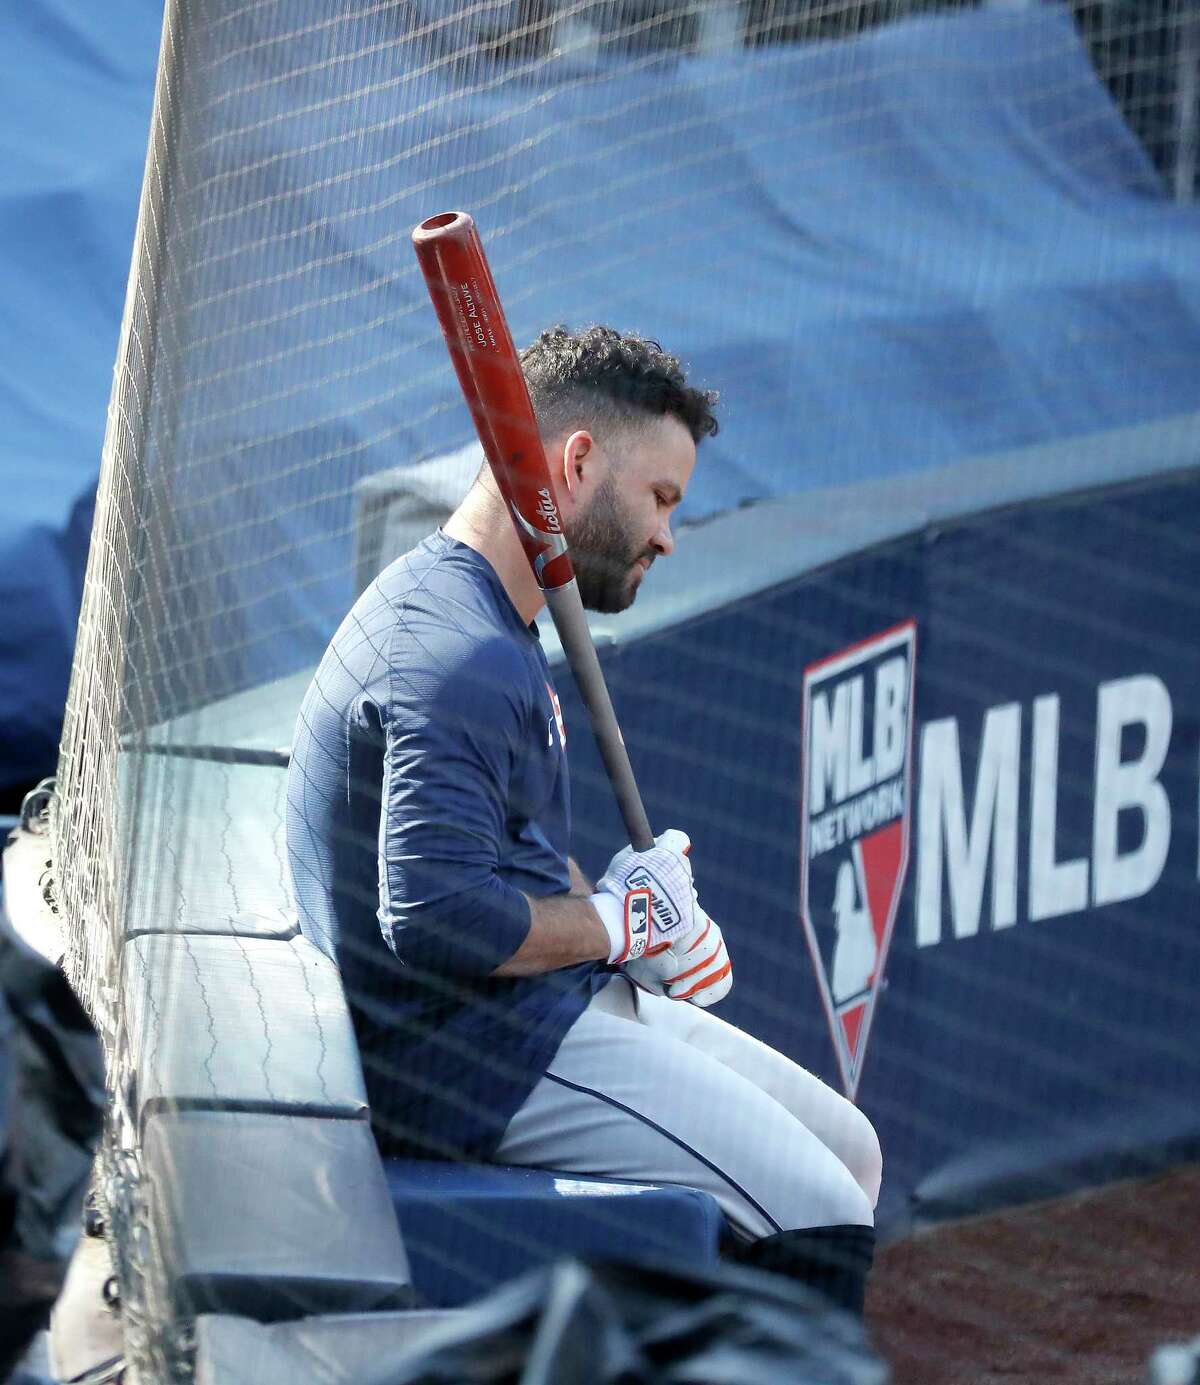 Houston Astros Jose Altuve waits his turn for batting practice during workouts at Petco Park, Saturday, October 10, 2020, in San Diego, as the Astros prepare for the 2020 American League Championship Series against the Tampa Bay Rays starting Sunday.